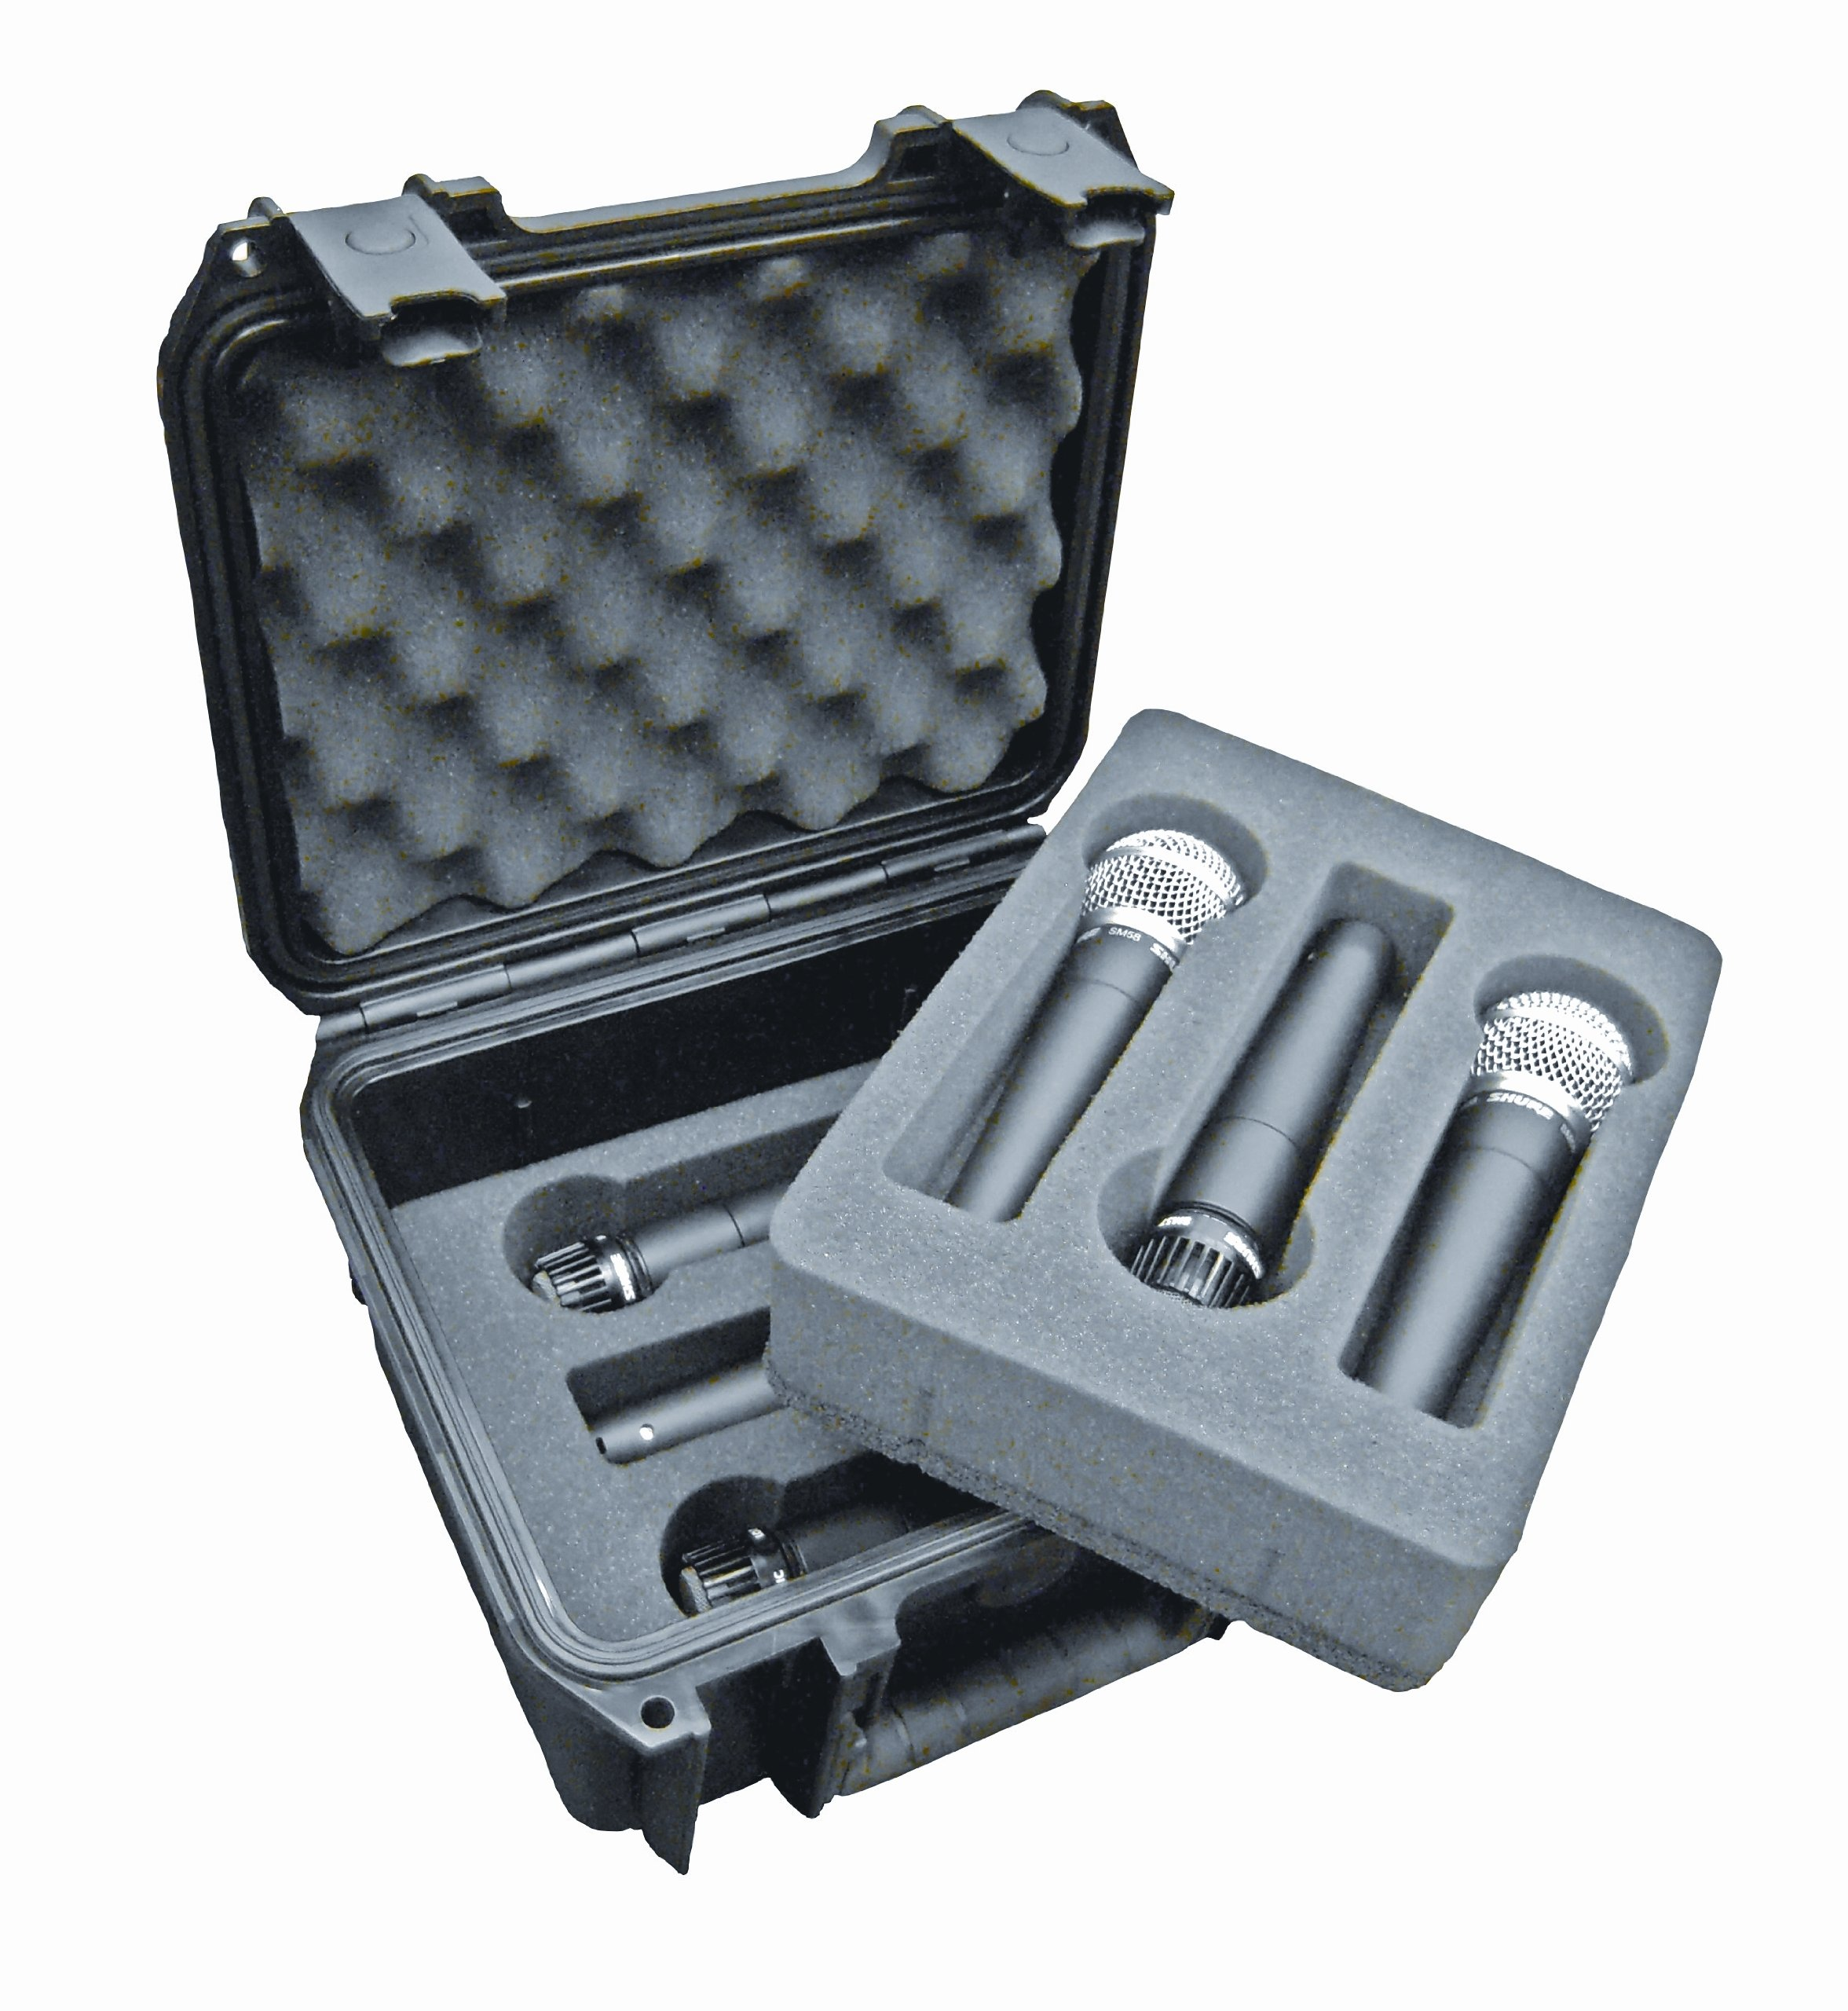 SKB 3I-0907-MC6 Injection-Molded Waterproof Case for Six Microphones - Black